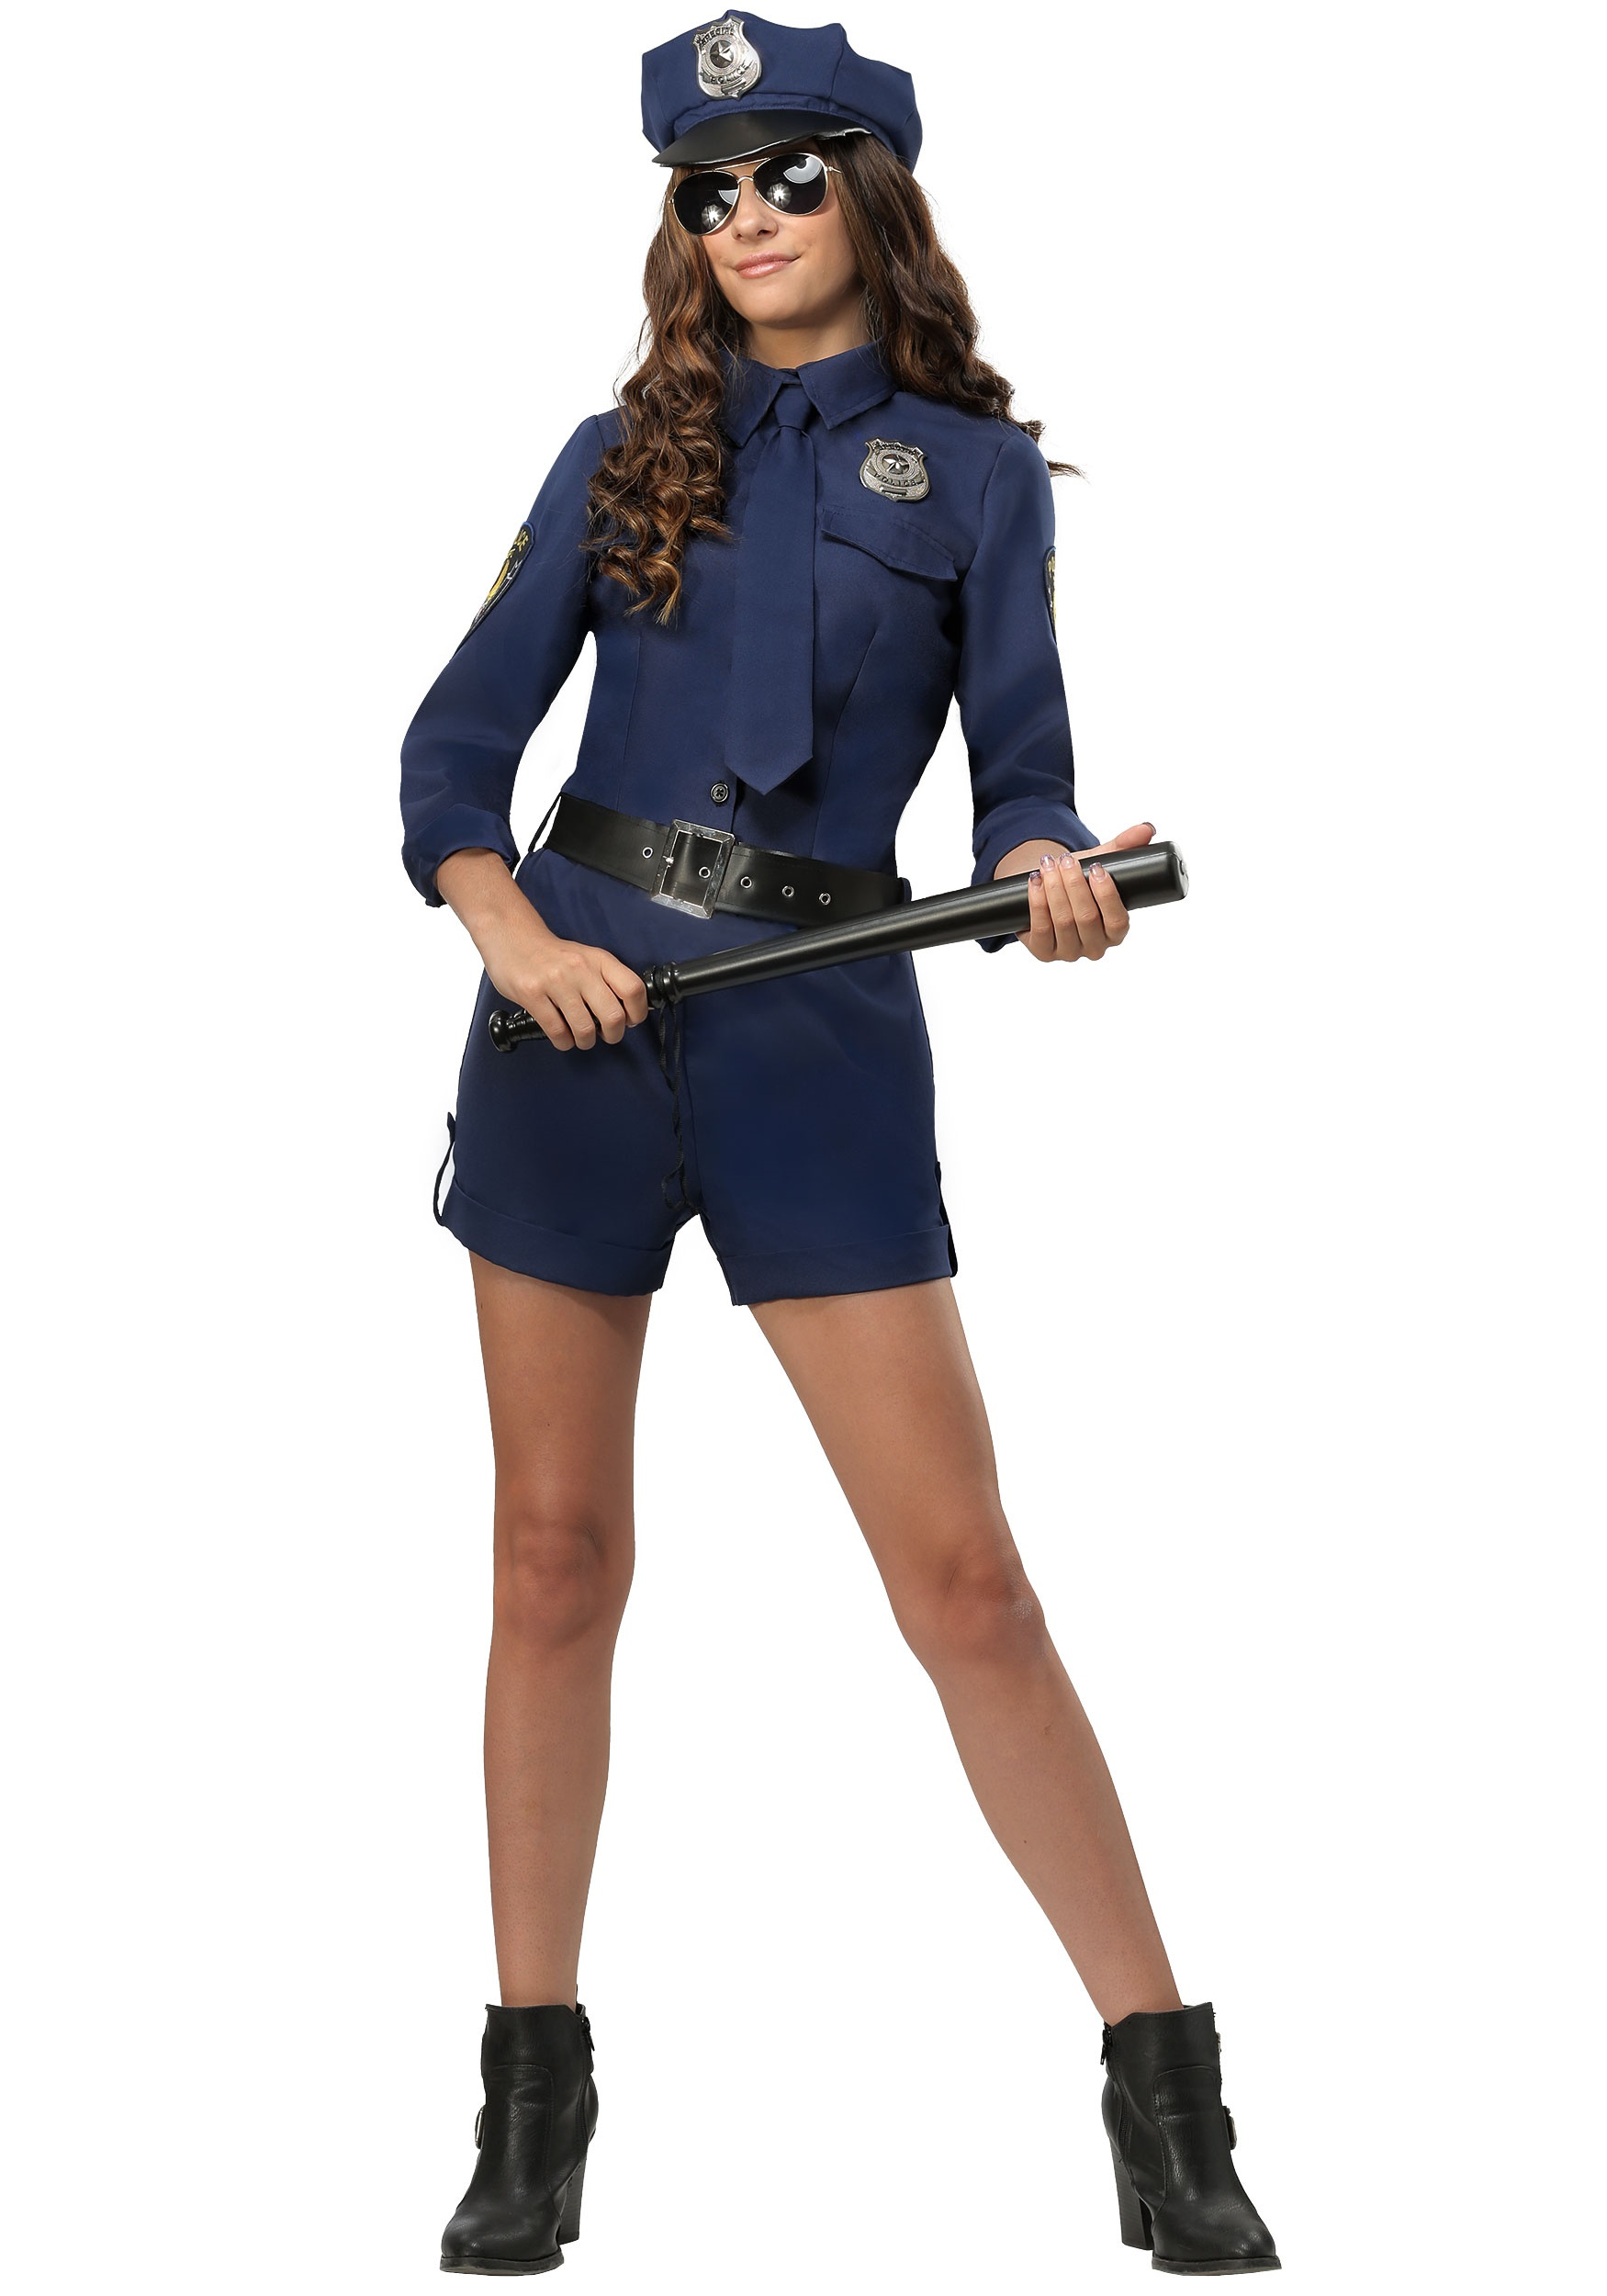 Police Fitted Womens Adult Cop Officer Halloween Costume Shirt